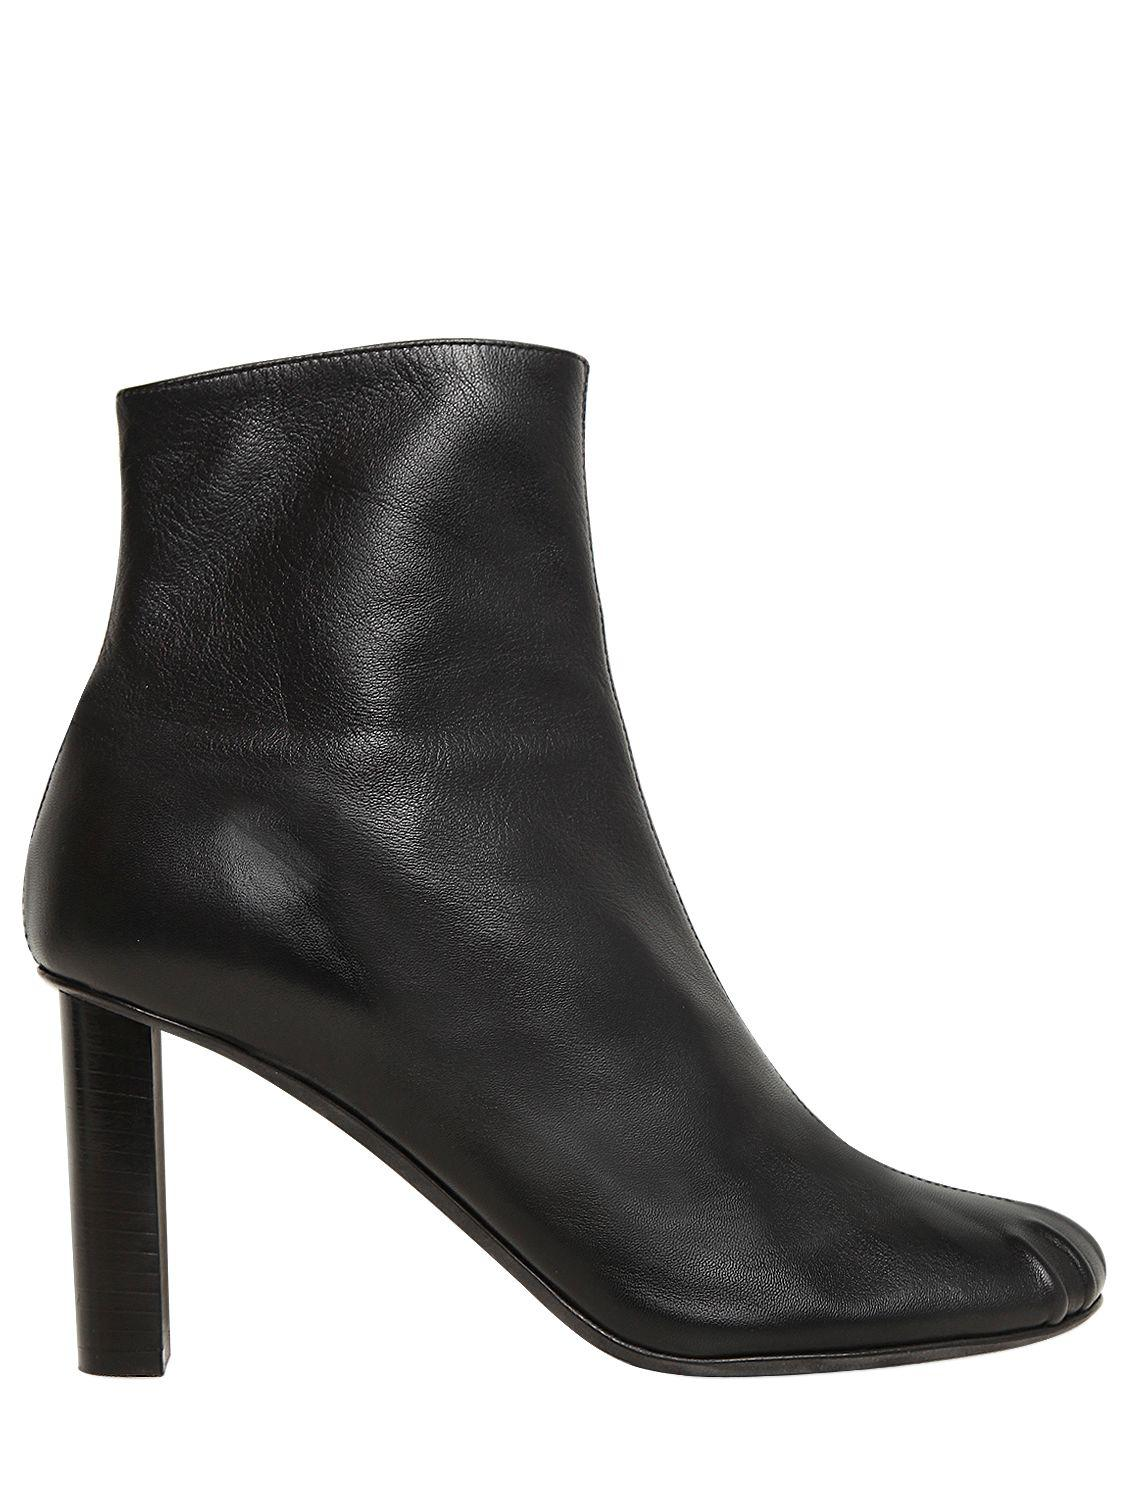 JOSEPH. Women's Black 90mm Leather Ankle Boots